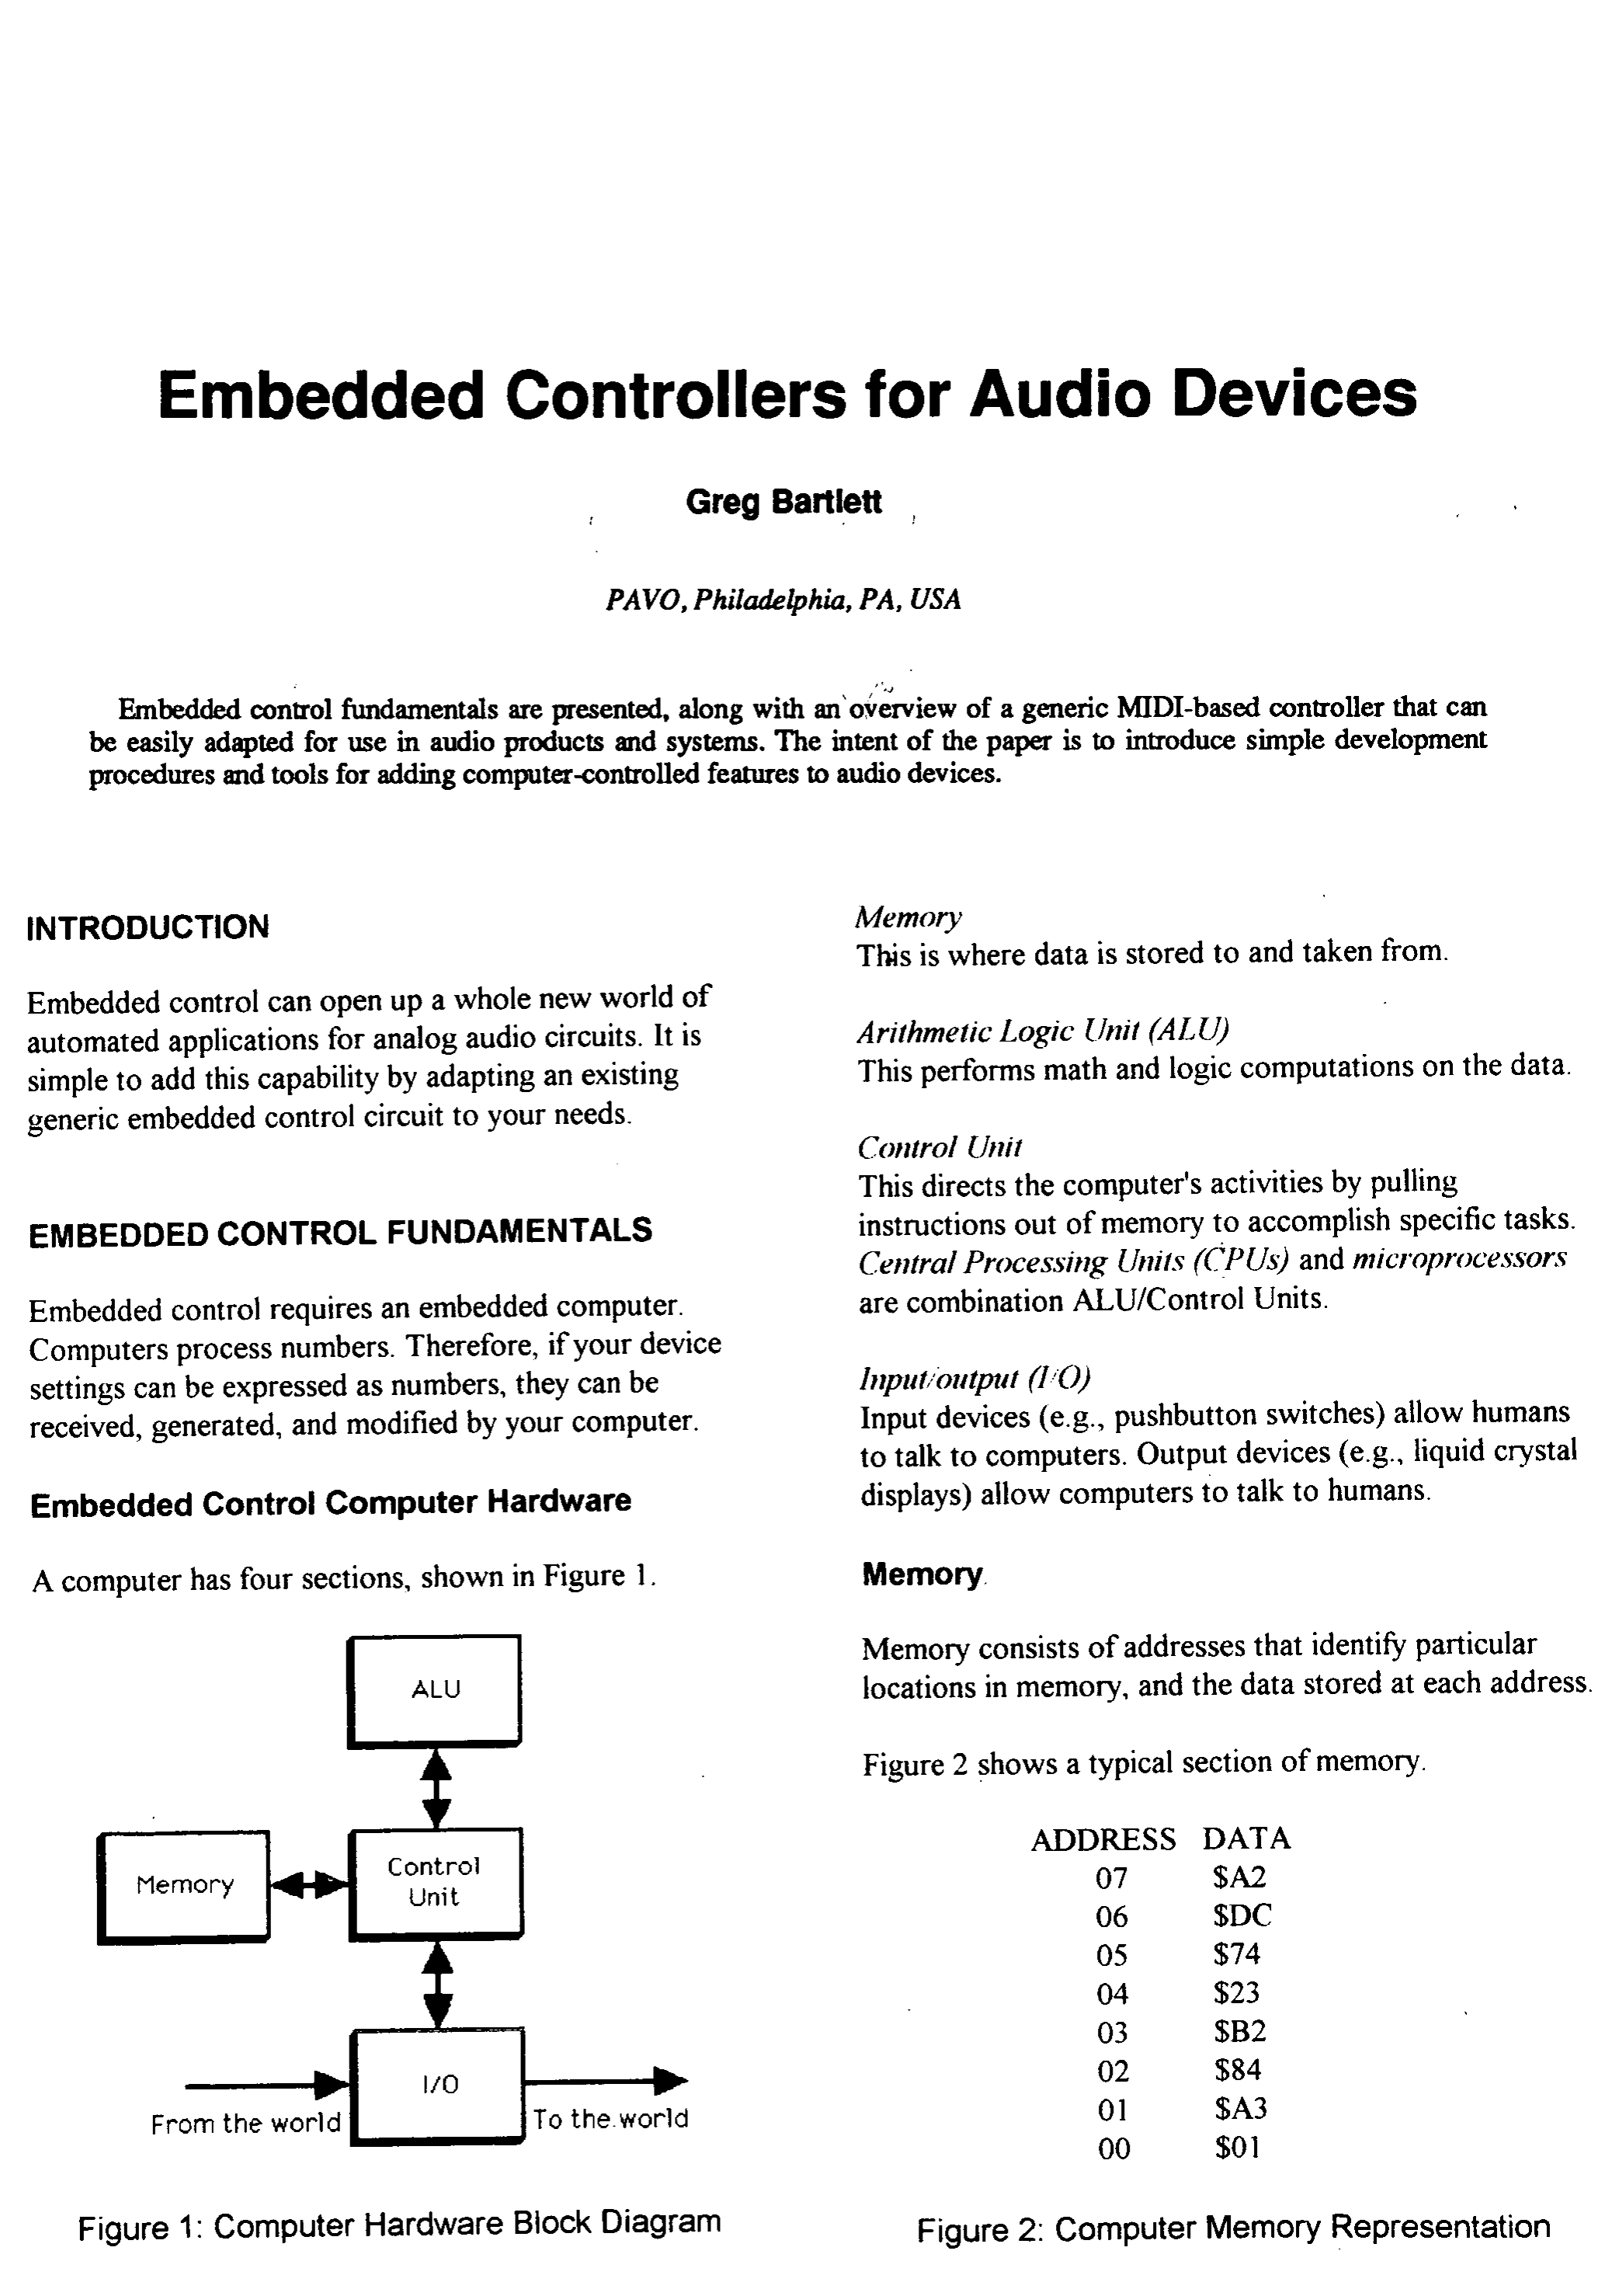 AES E-Library » Embedded Controilers for Audio Devices